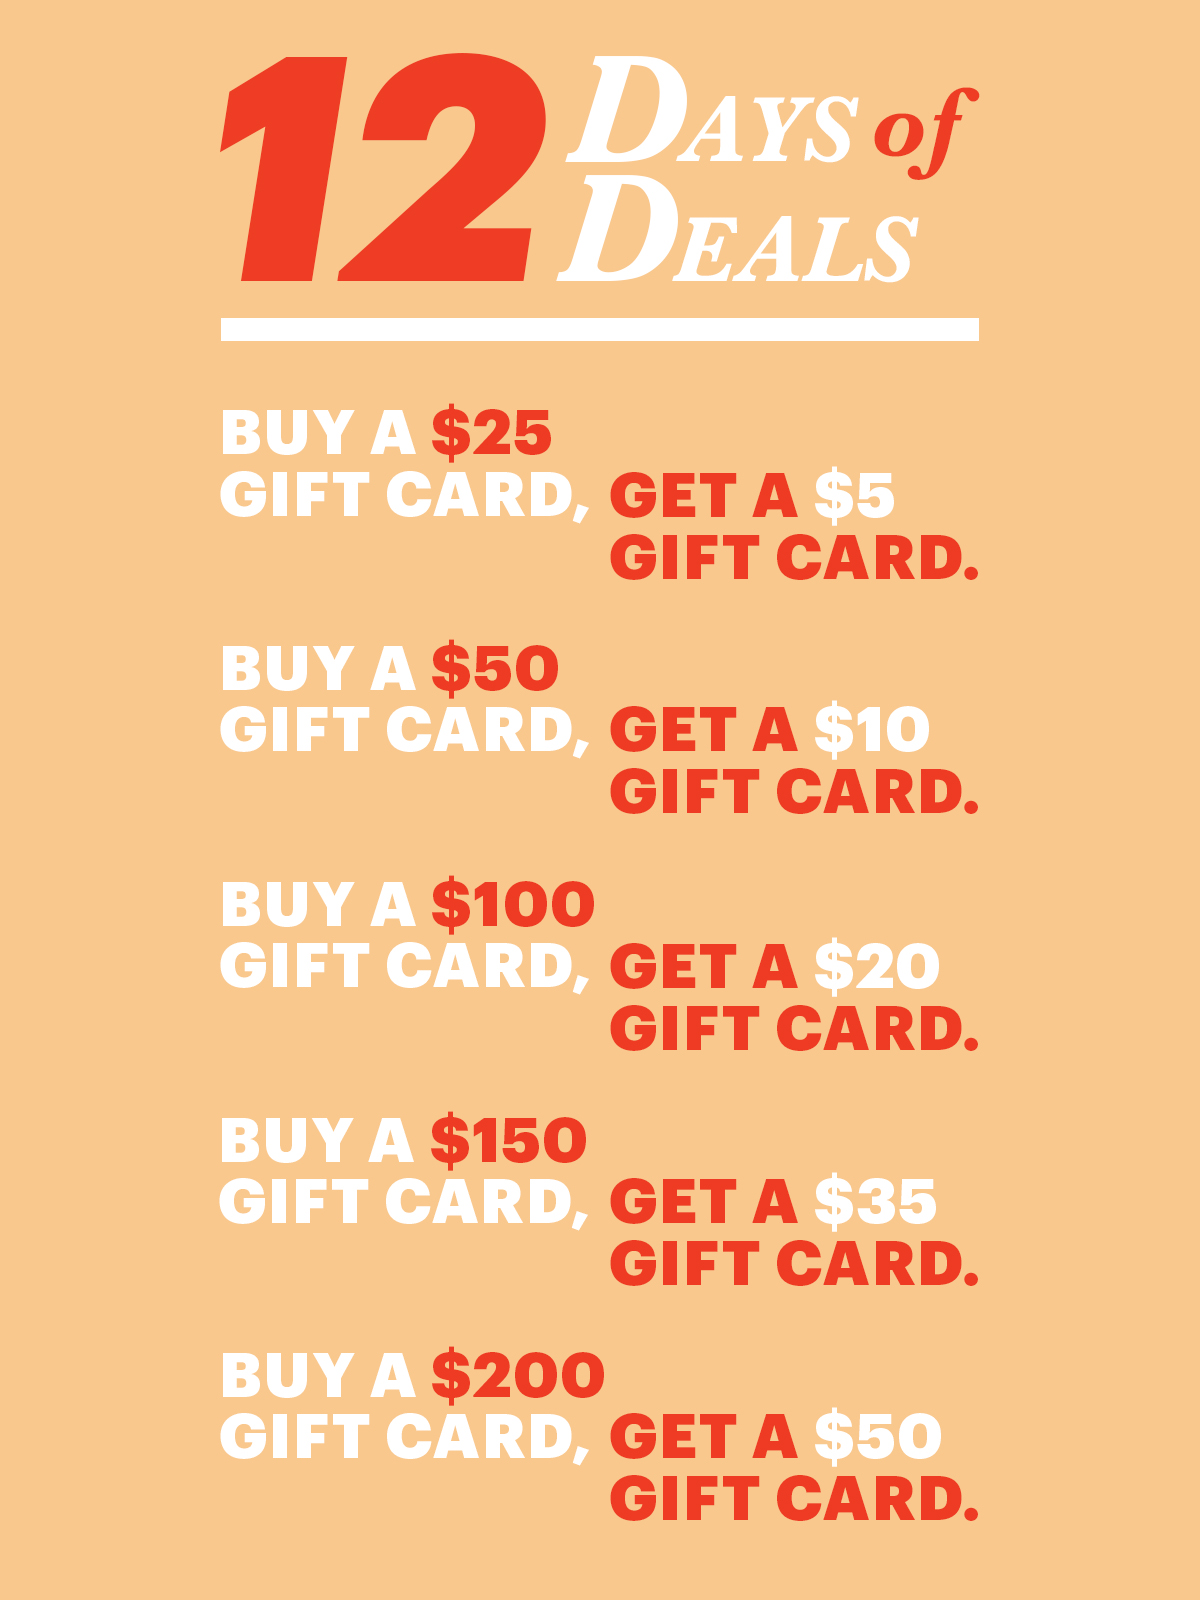 12 Days Of Deals: Day 12 Give A Gift Card, Get A Gift Card